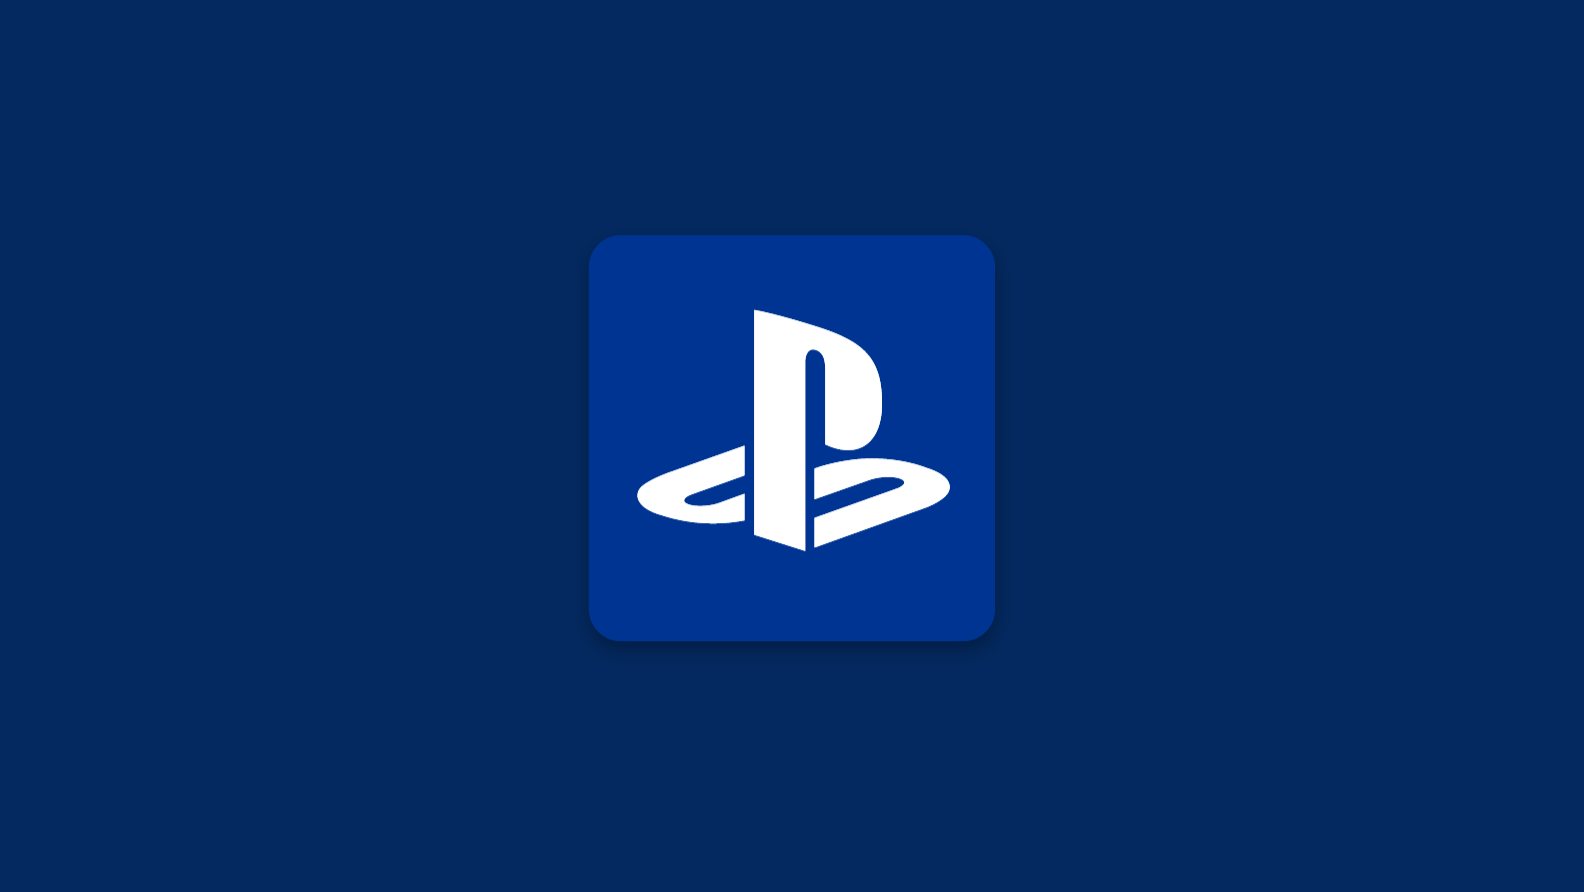 Sony redesigns the PlayStation app with a new look and exclusive PS5 features - Android Police